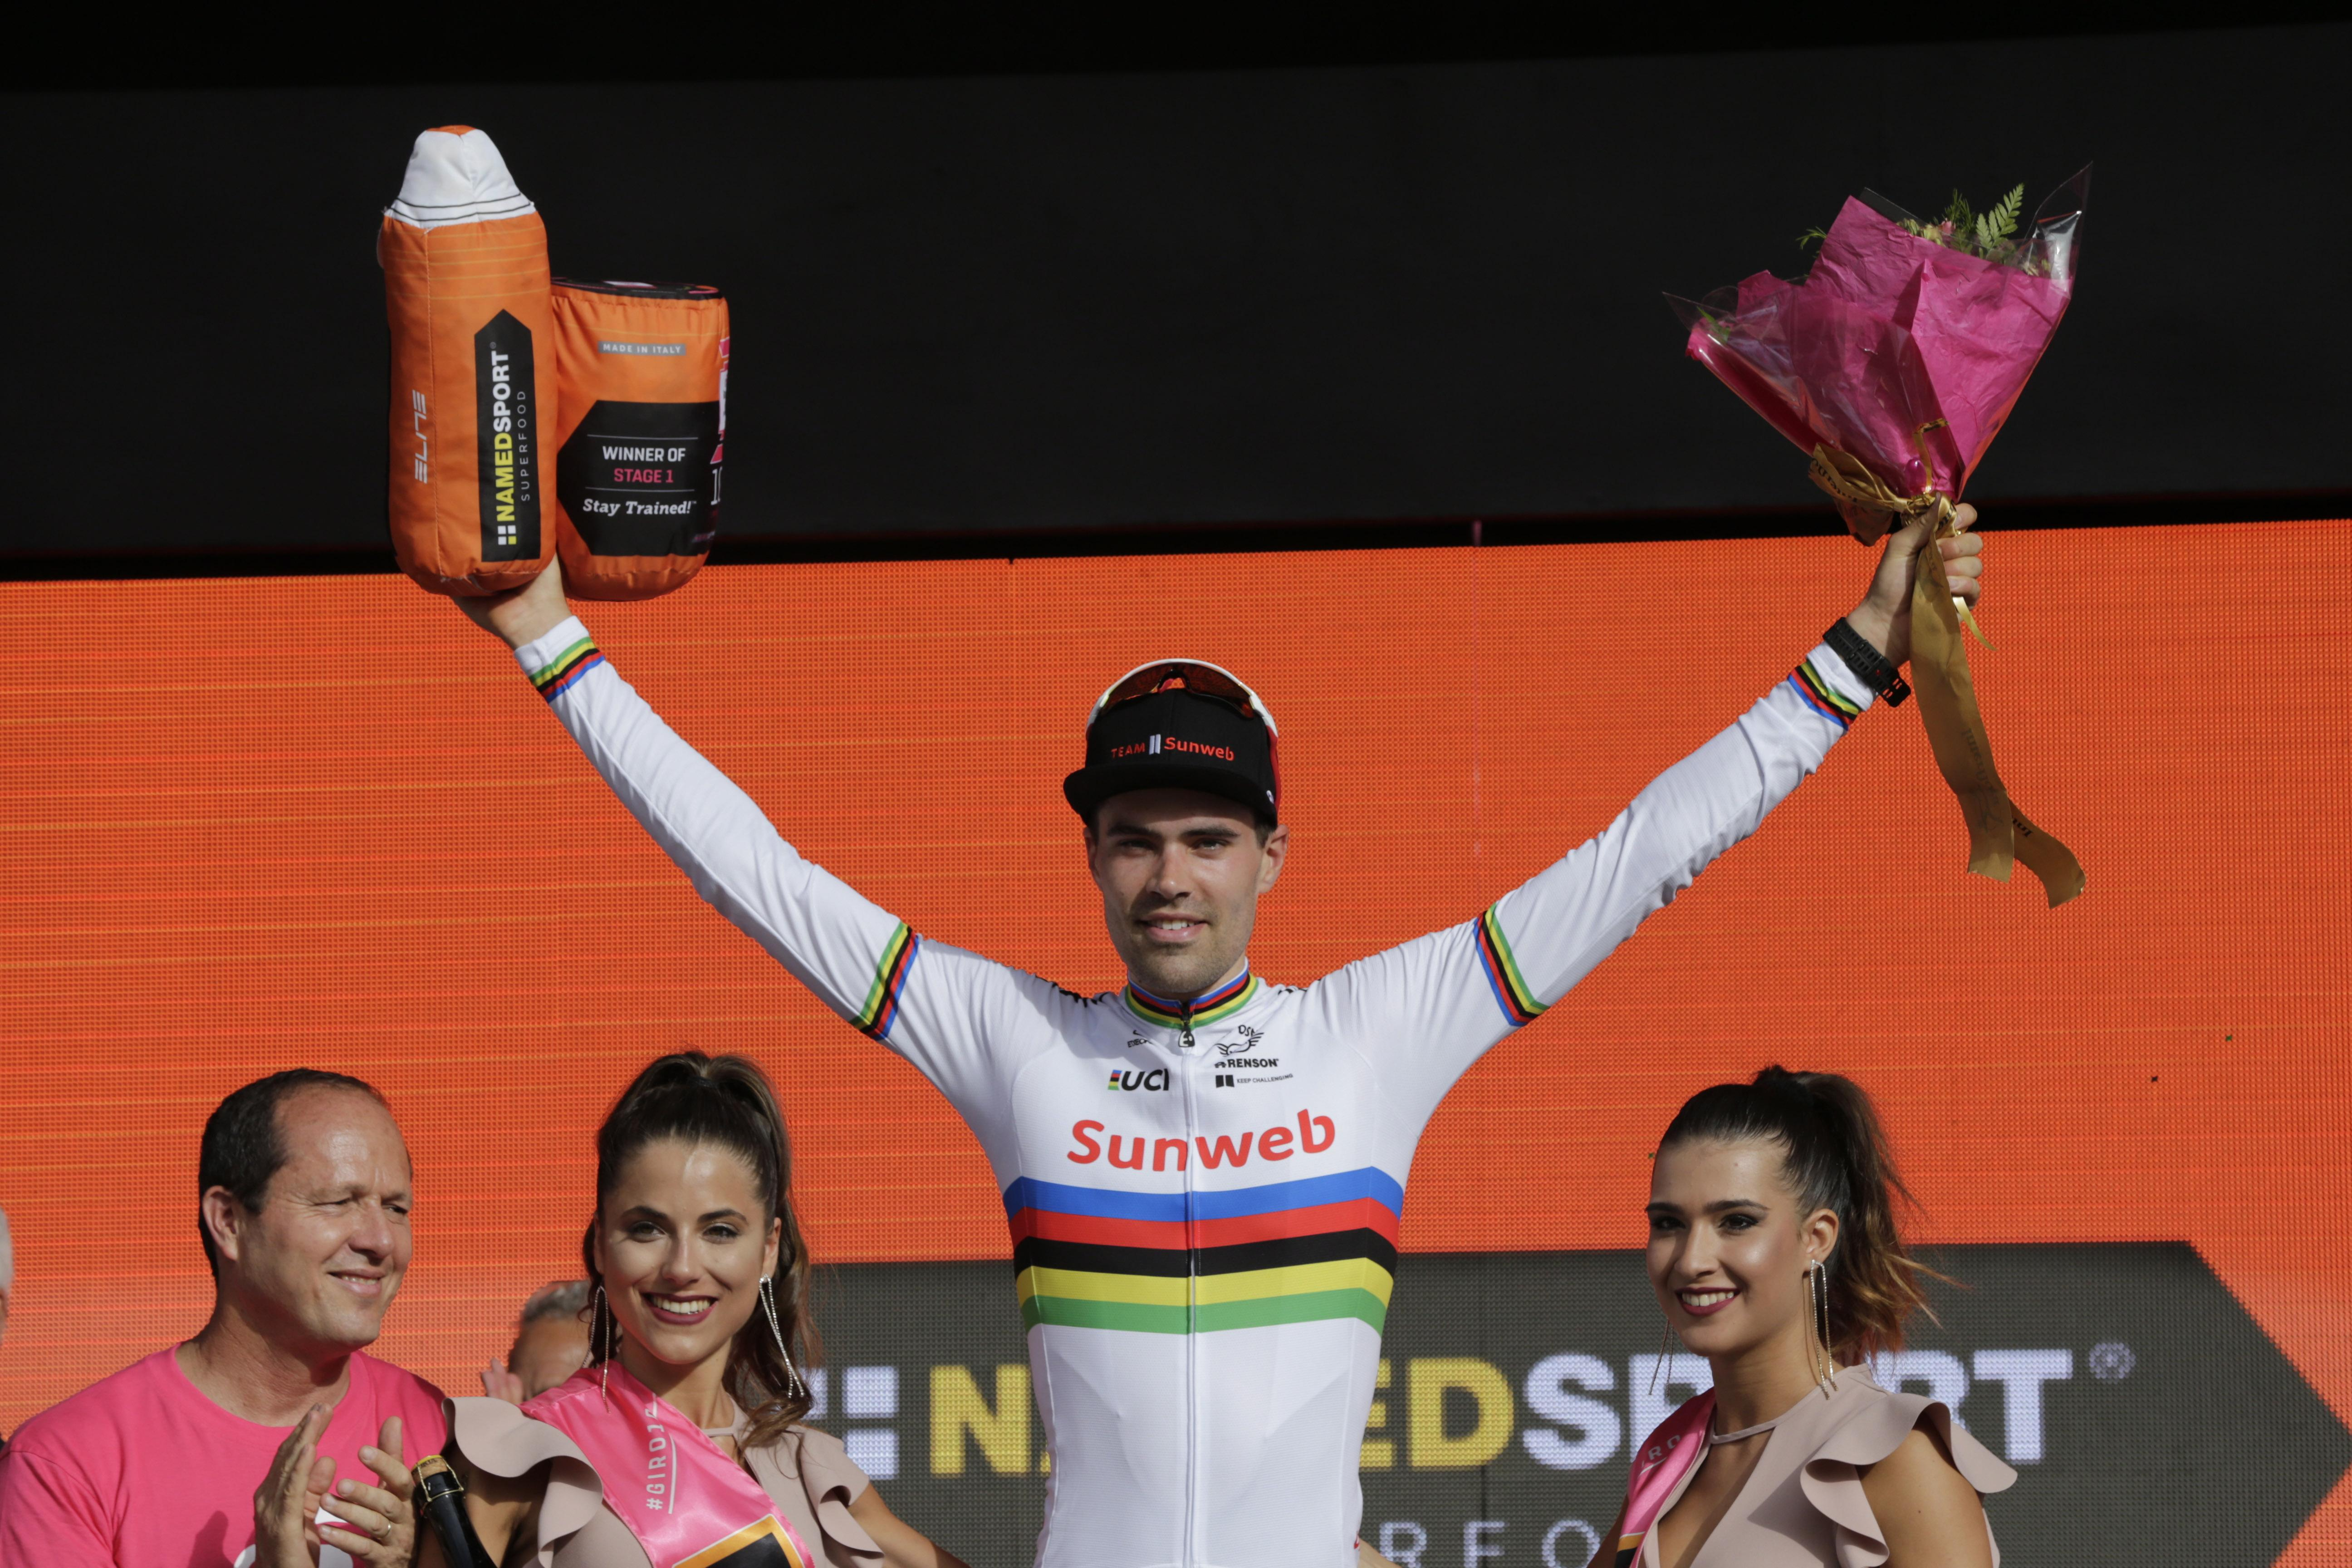 Tom Dumoilin won the first stage of Giro D'Italia in Jerusalem